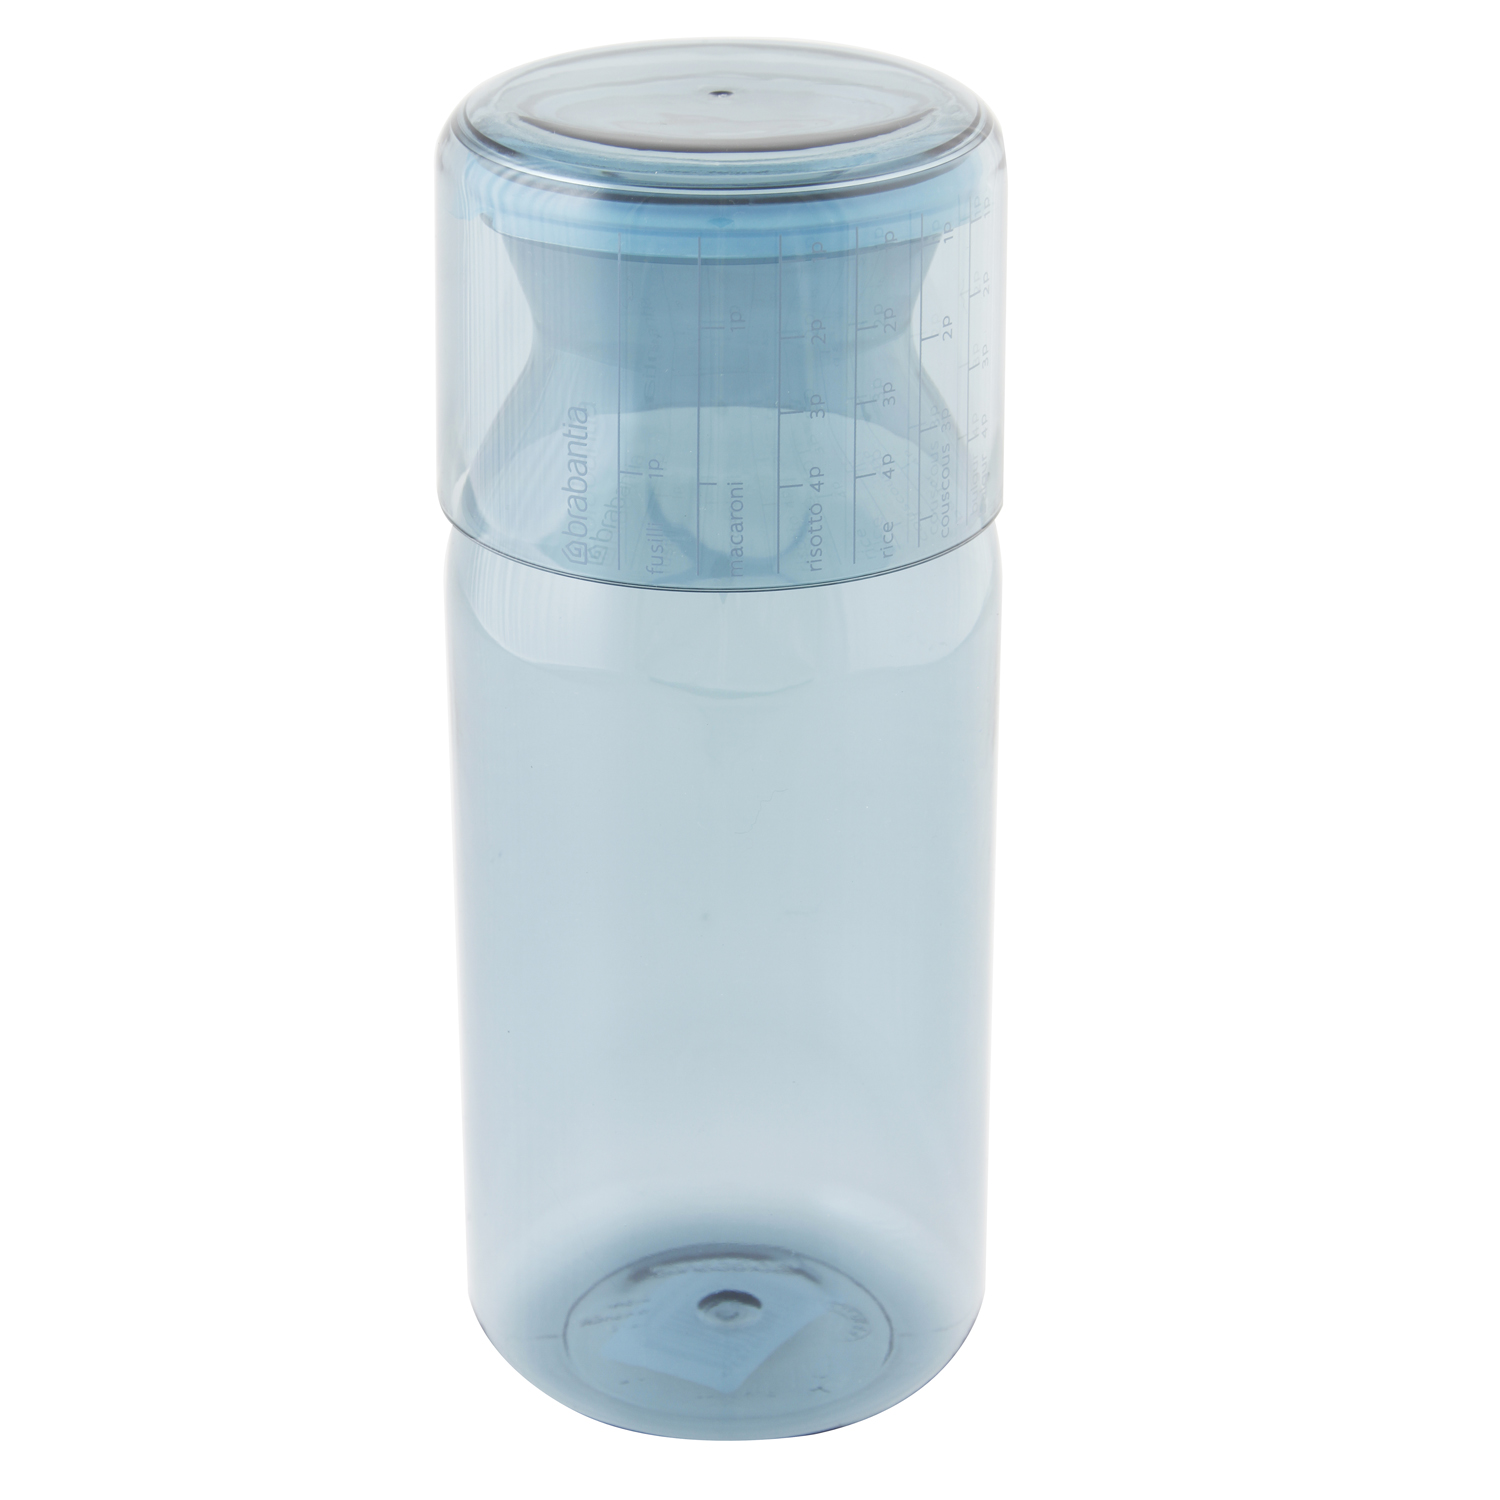 Brabantia Mint 13L Storage Jar with Measuring Cup Home Store More